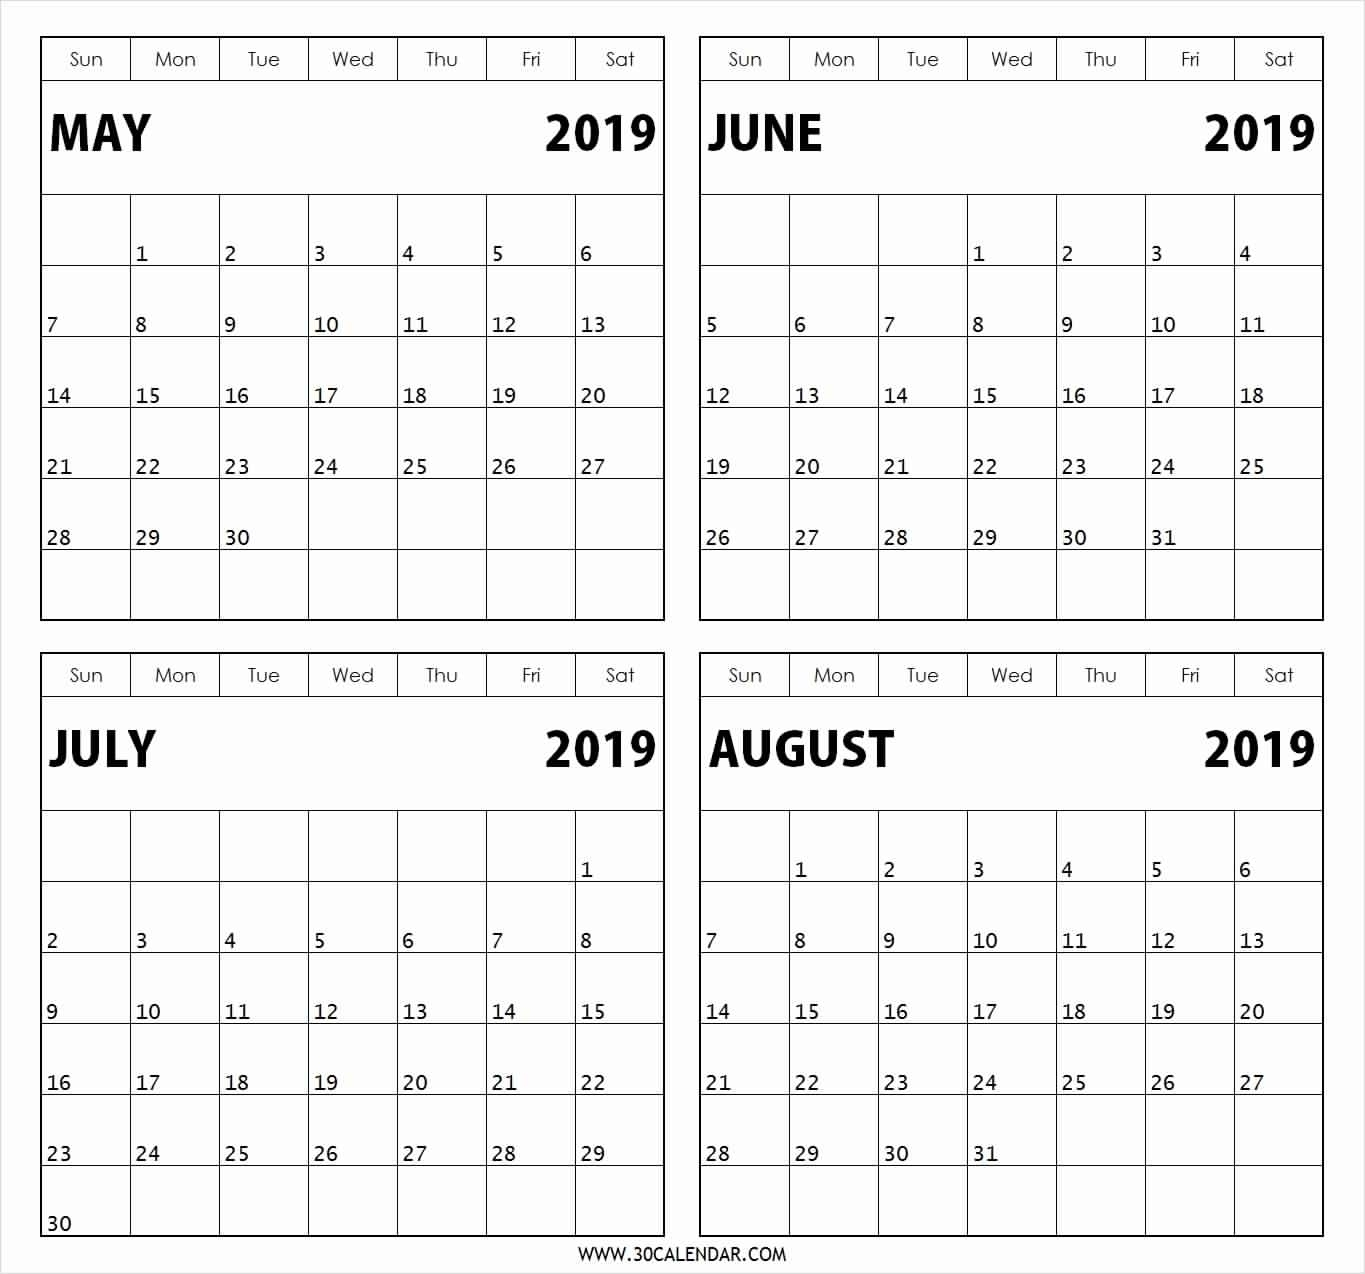 2020 Calendar Months Per Page Printable Pdf | Monthly with regard to Printable Calendar 2020 3 Months Per Page